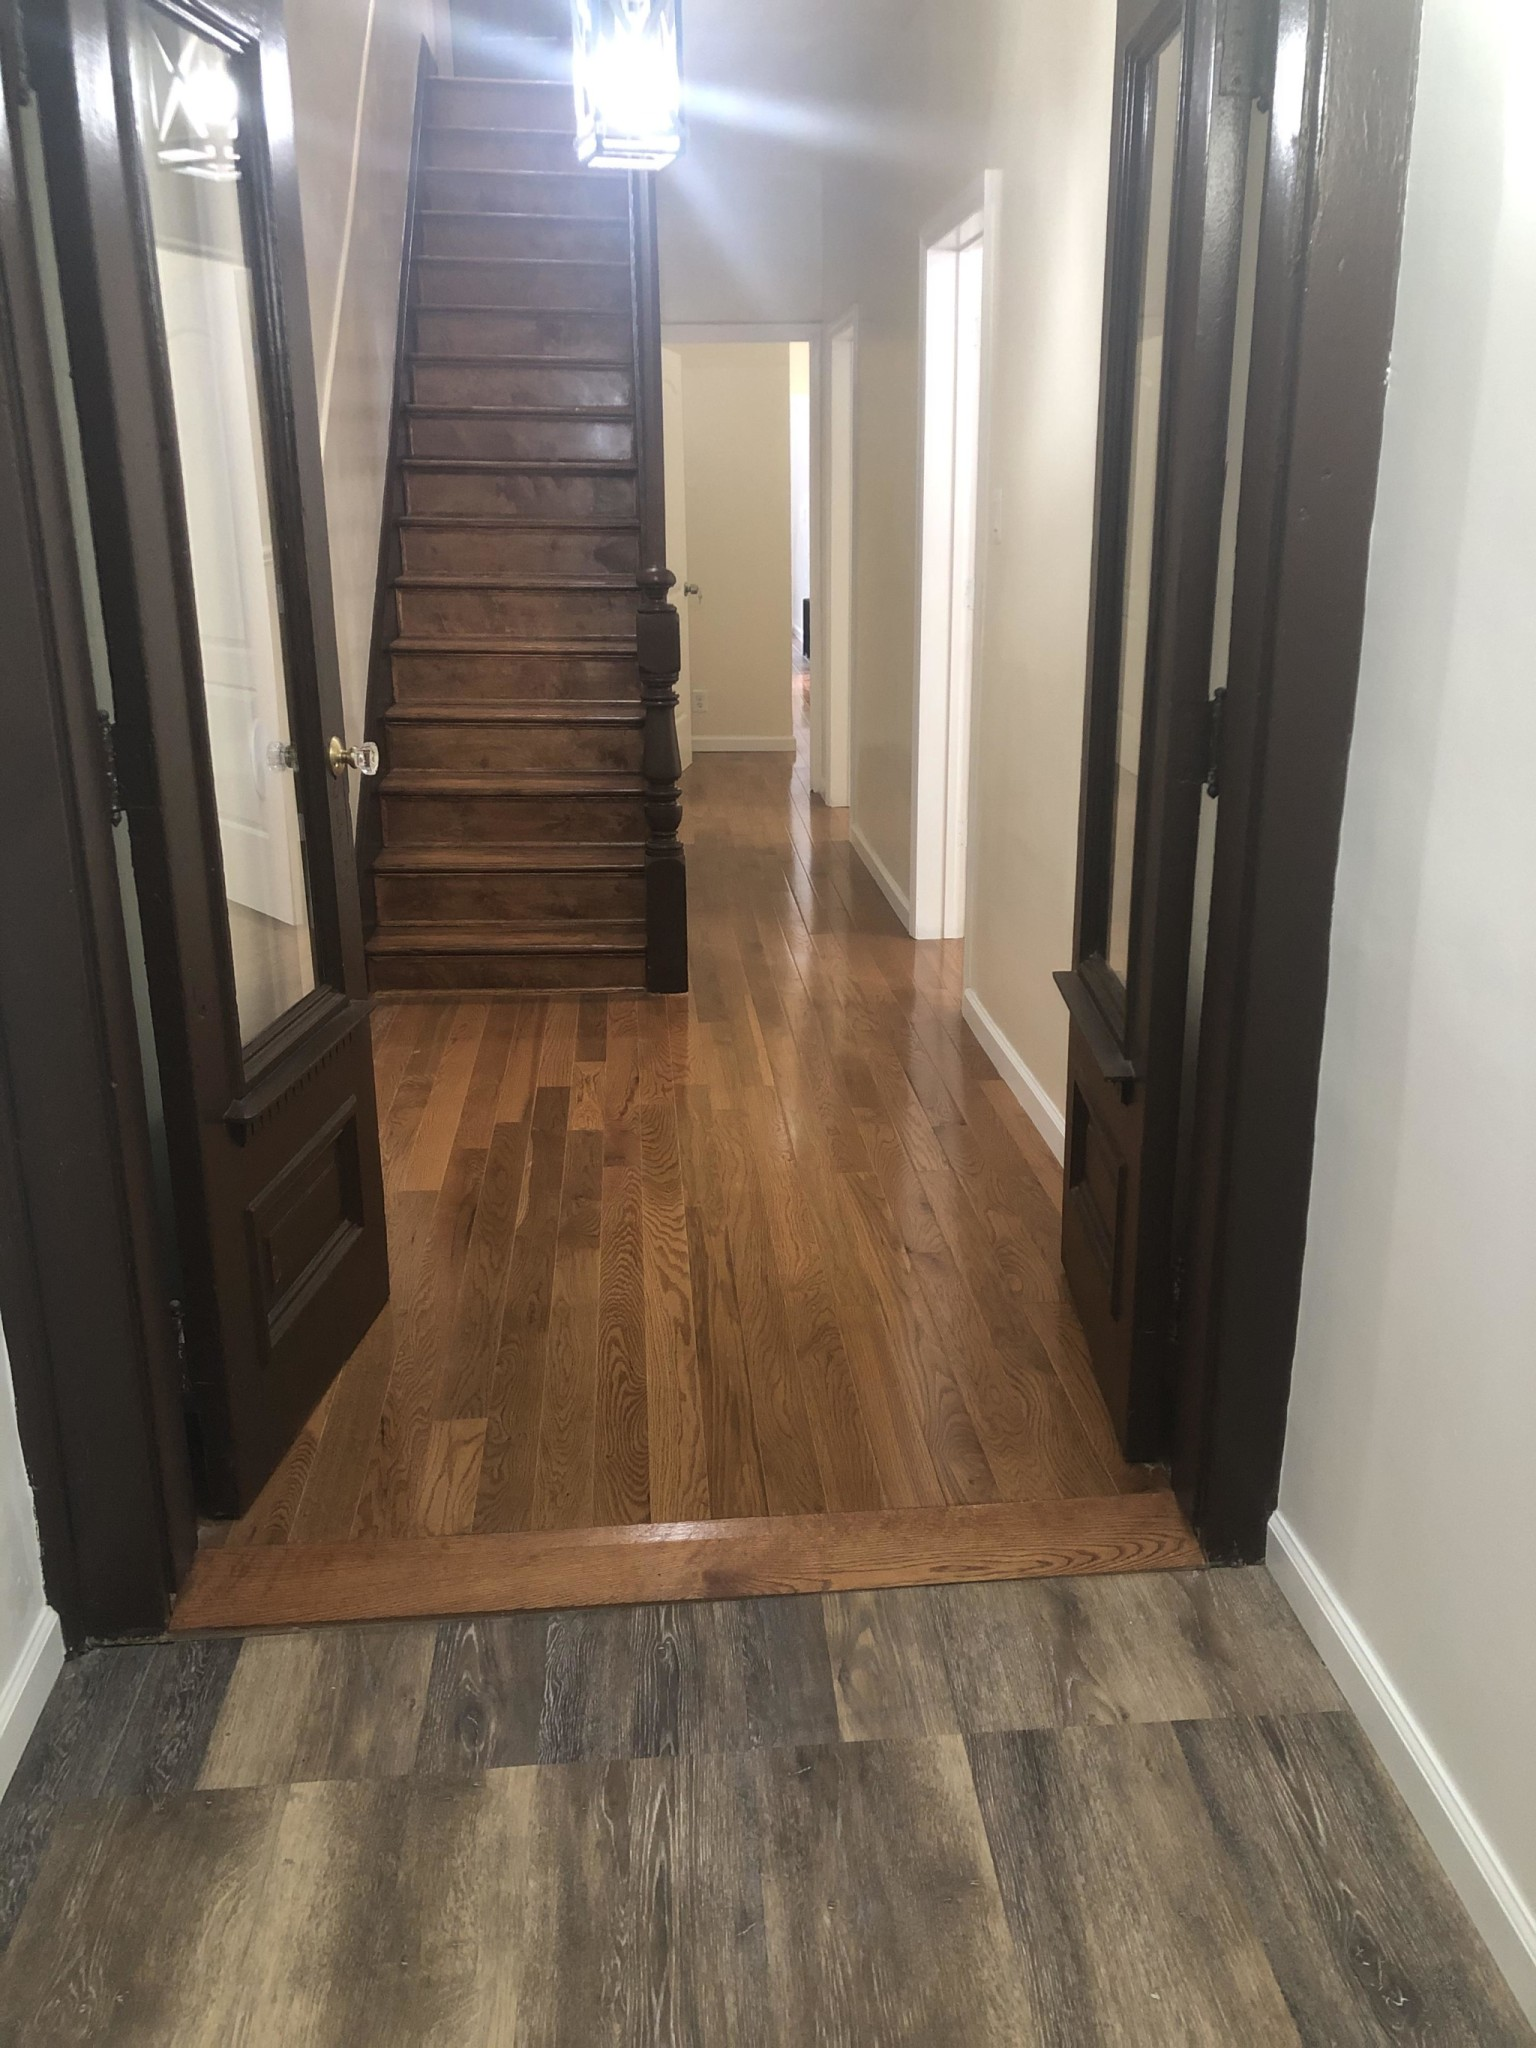 4 Beds, 2 Baths apartment in Queens, Jamaica Hills for $3,200